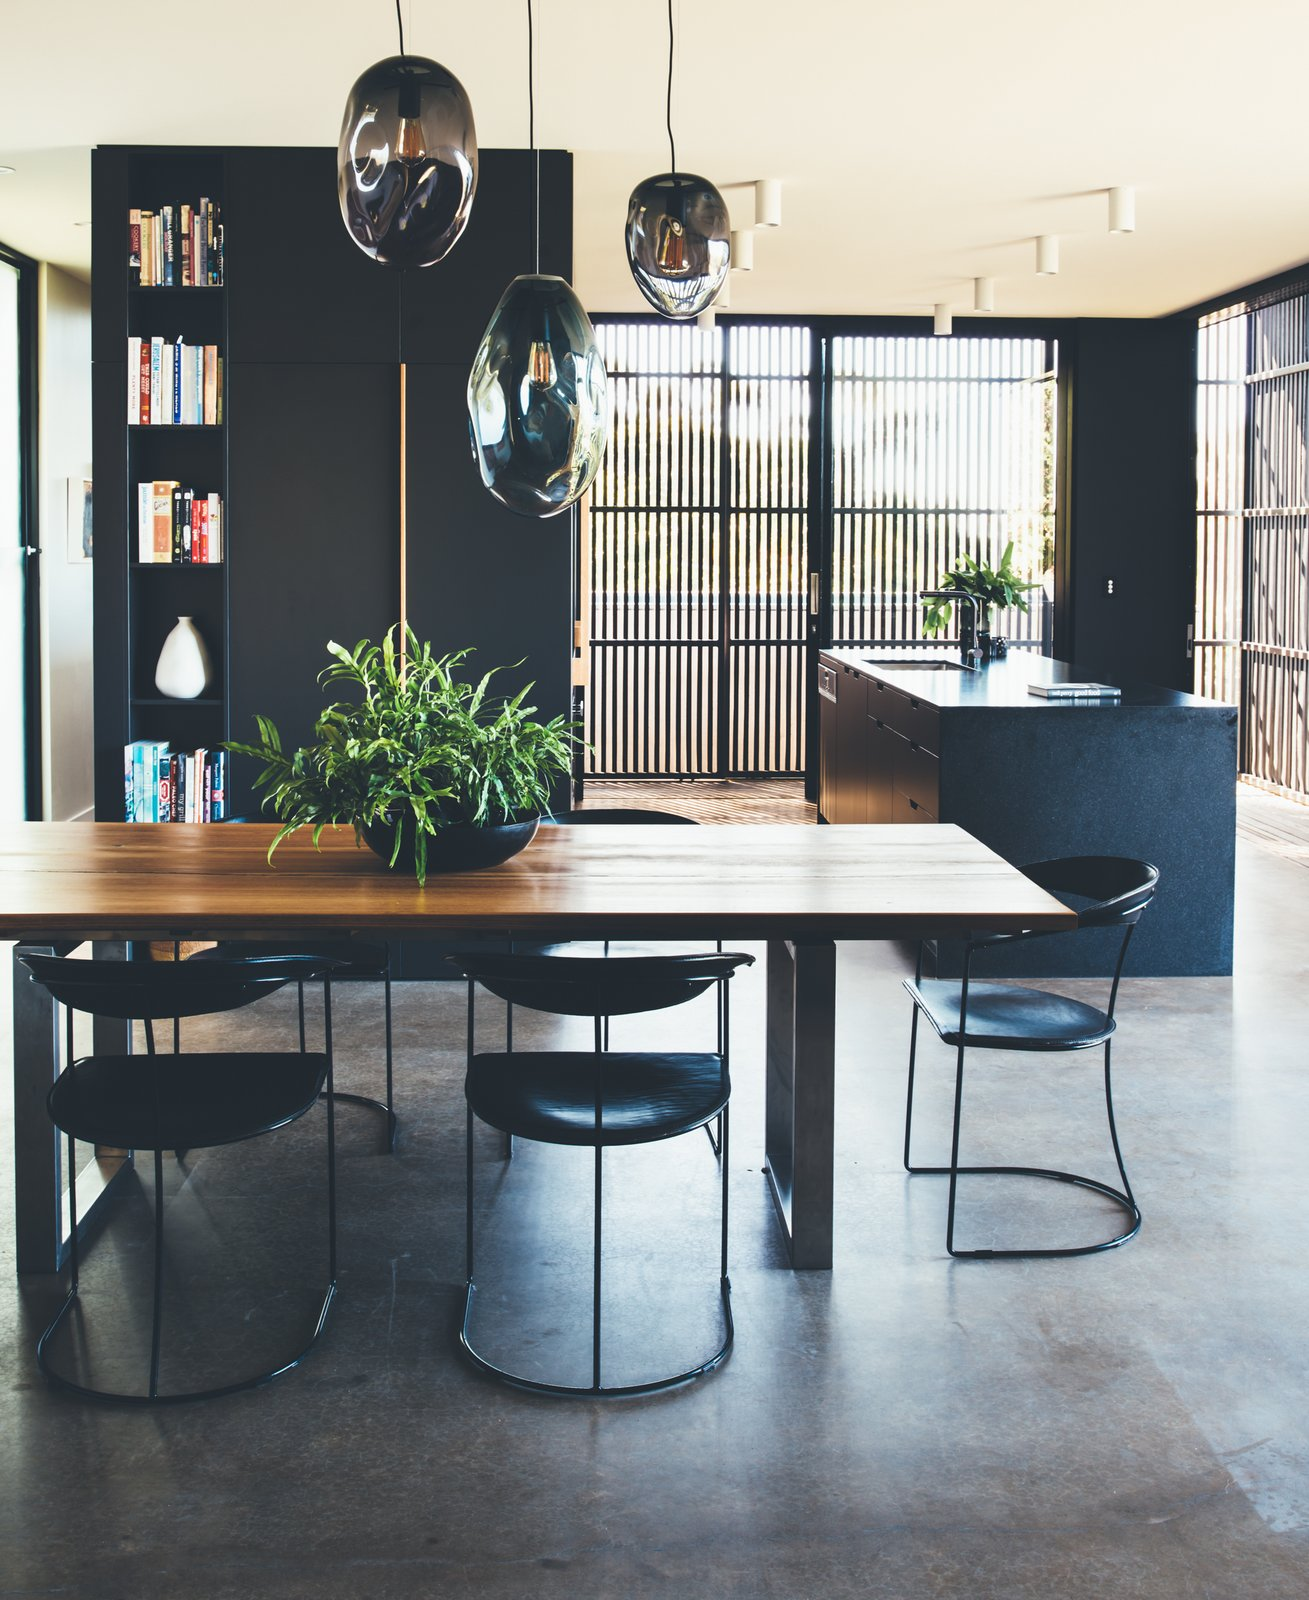 Dining, Table, Pendant, Chair, Ceiling, Concrete, and Shelves Ample natural light enters via the sliding hardwood screens, keeping the interiors bright and airy.  Dining Concrete Table Ceiling Shelves Photos from This Australian Abode Is a Glass Pavilion Wrapped in Sliding Hardwood Screens